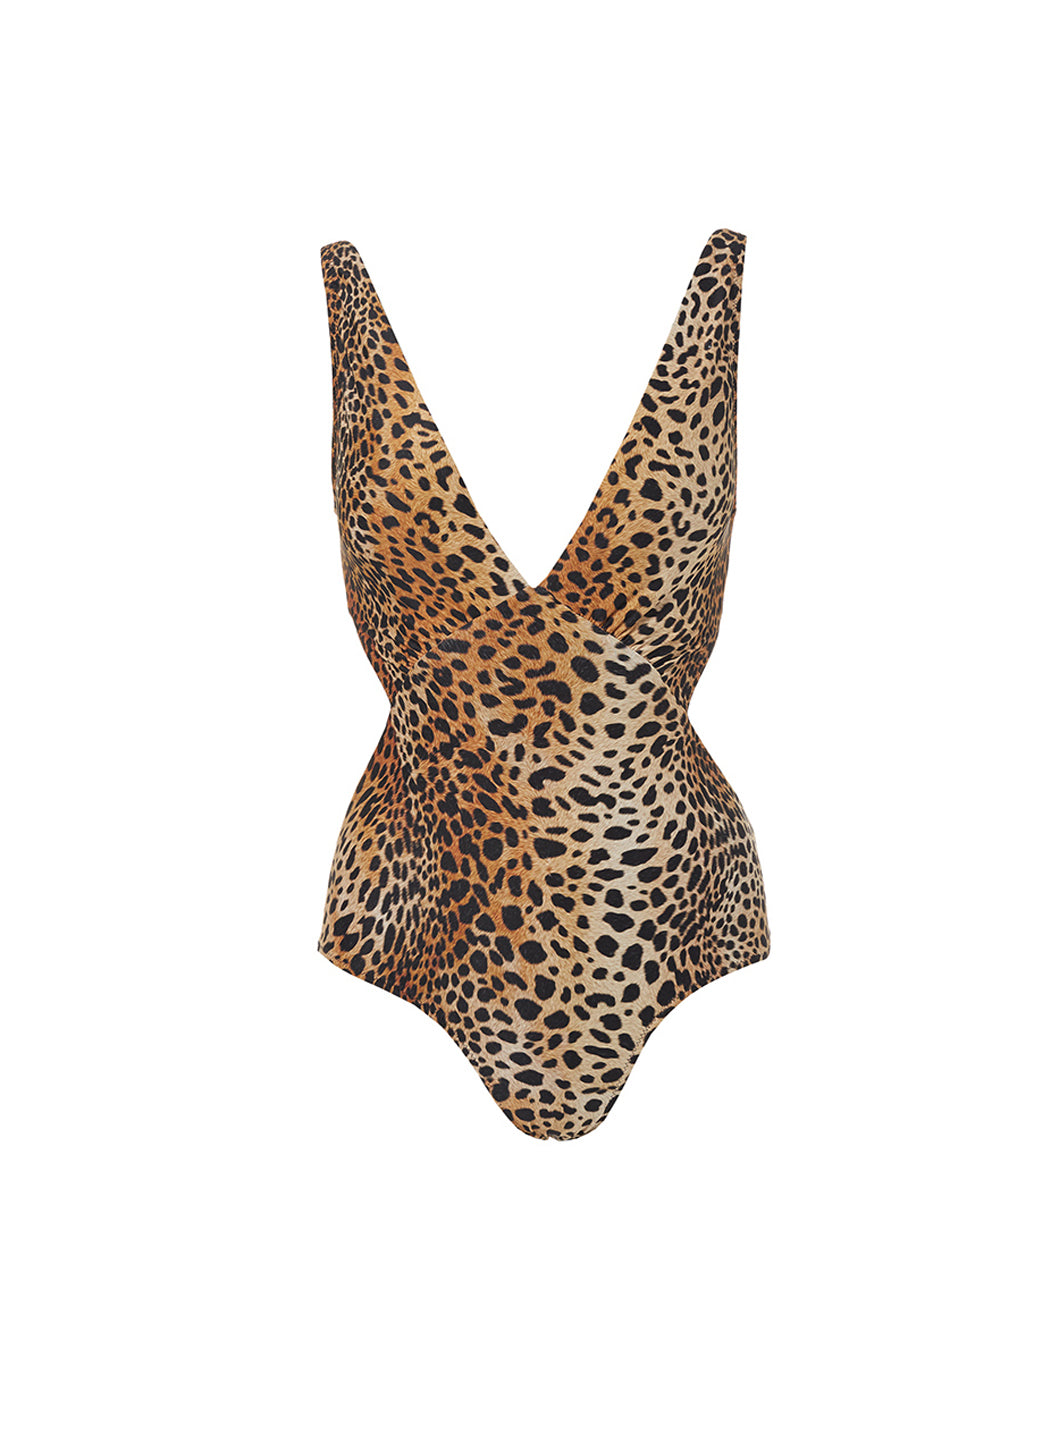 Delmar Cheetah Over The Shoulder V Neck Cut Out Swimsuit